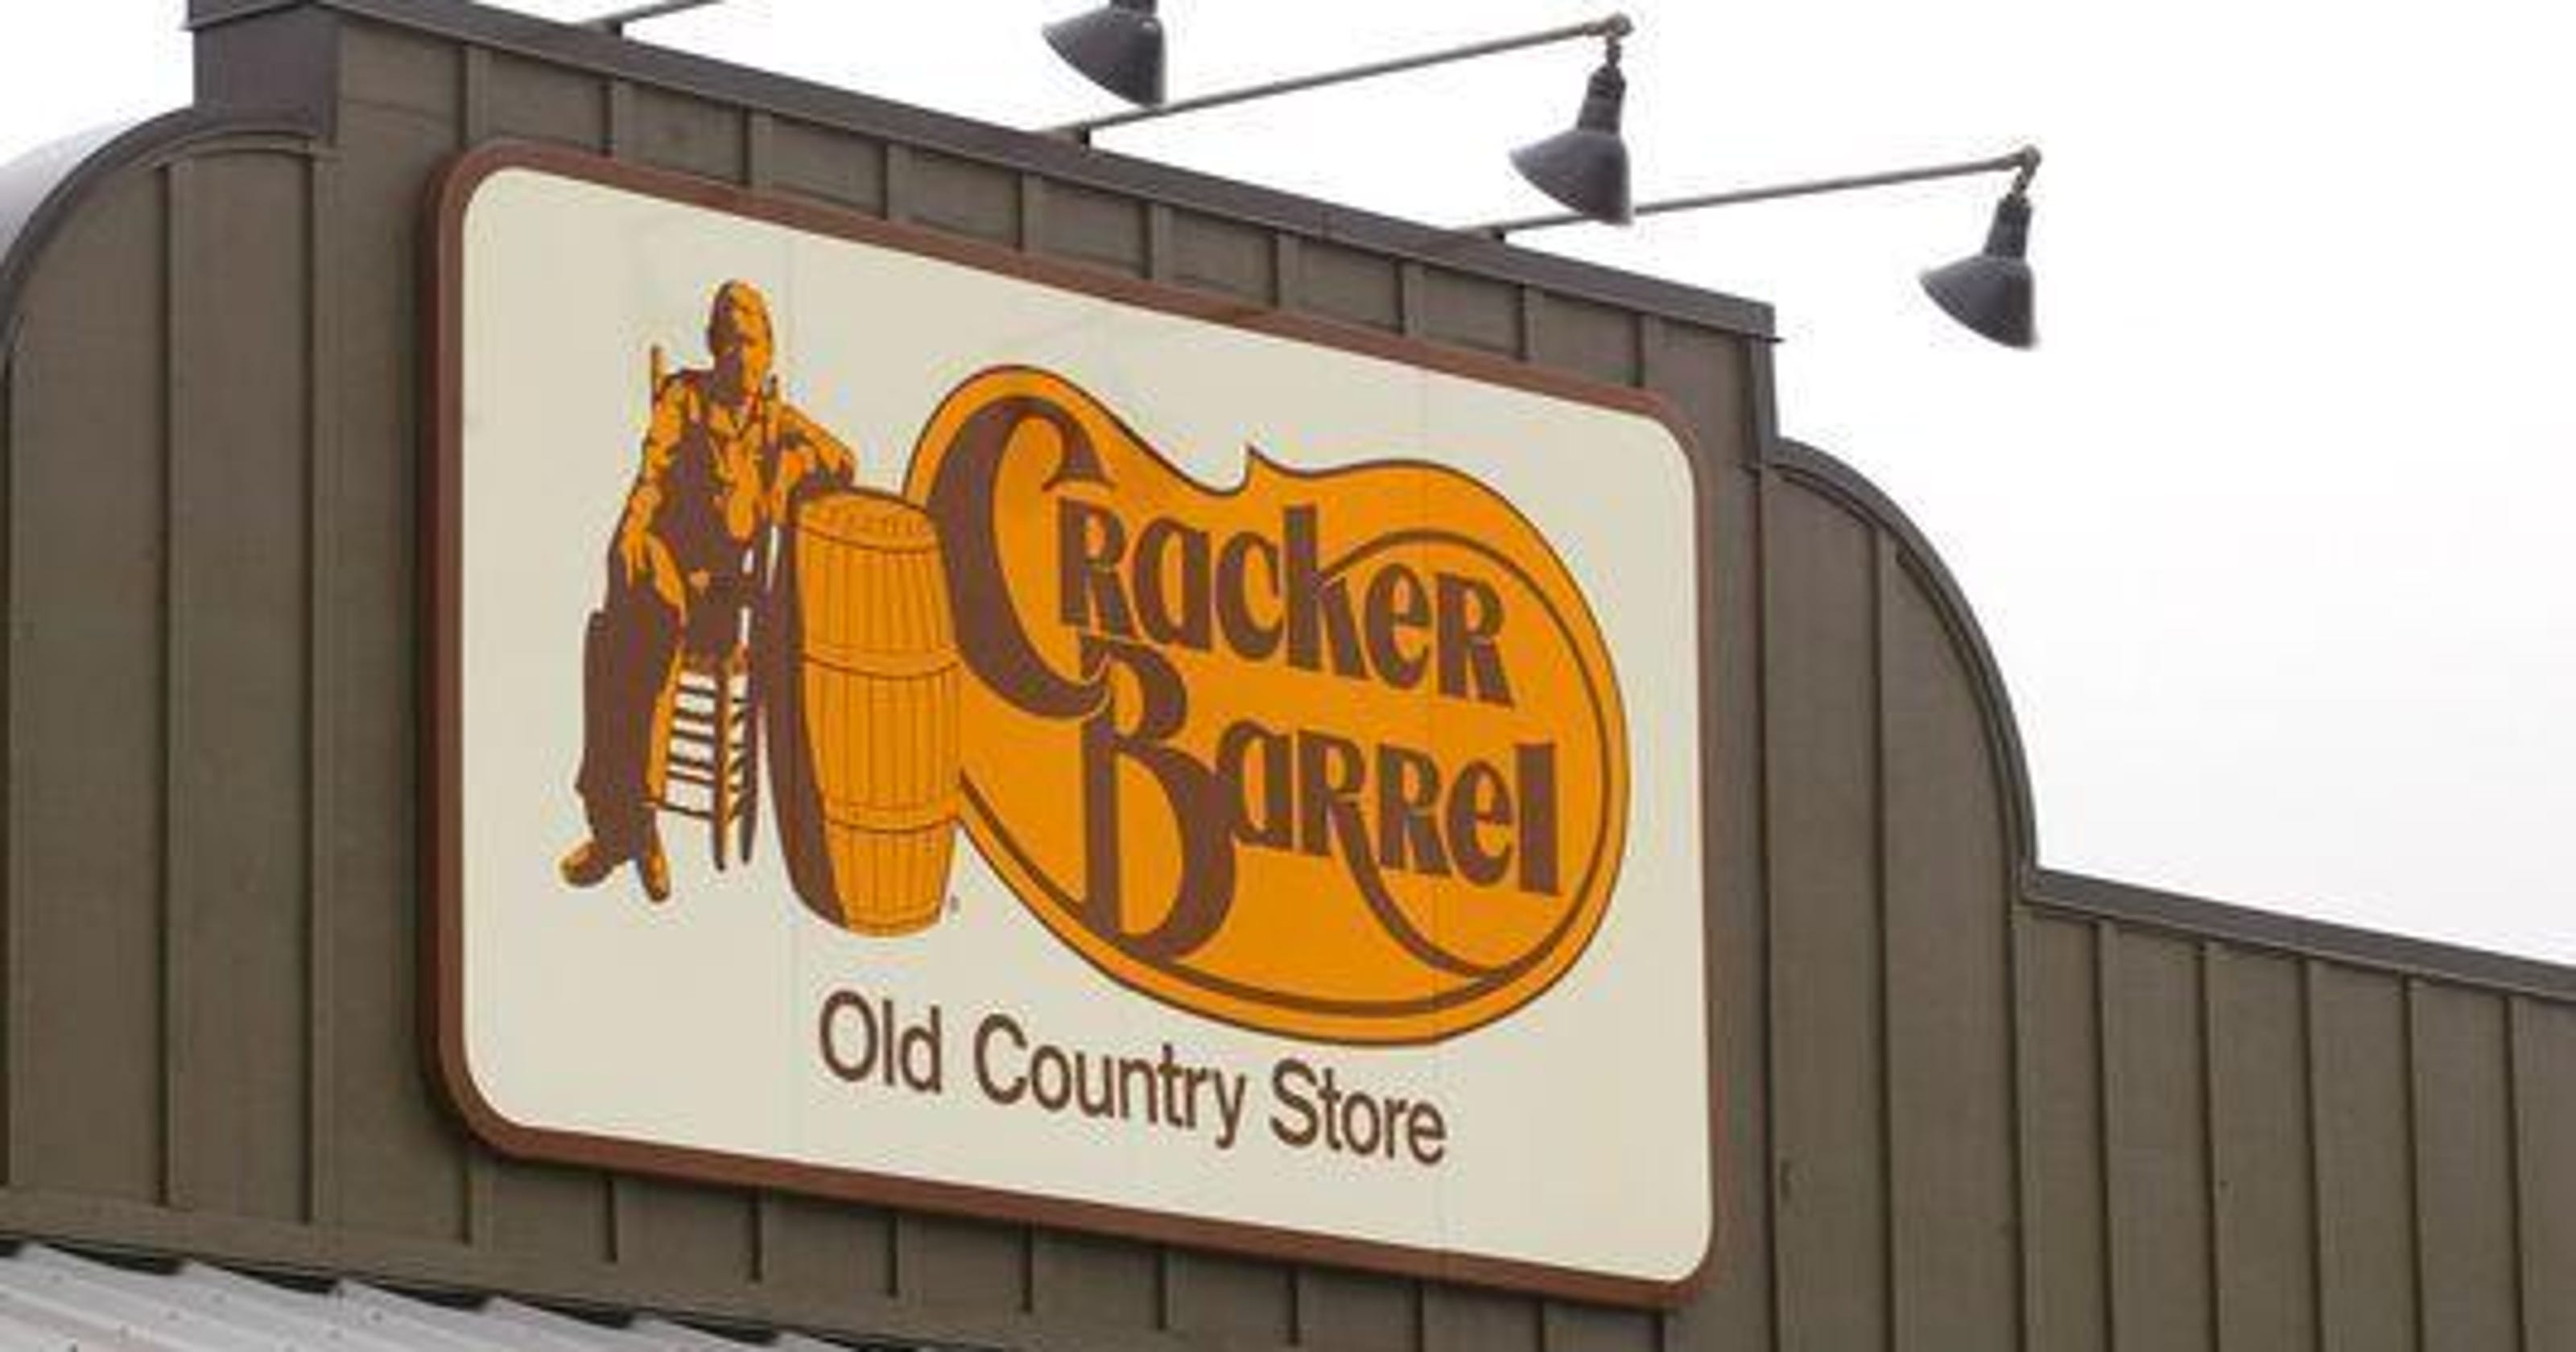 EDITORIAL: Freehold, Cracker Barrel perfect together